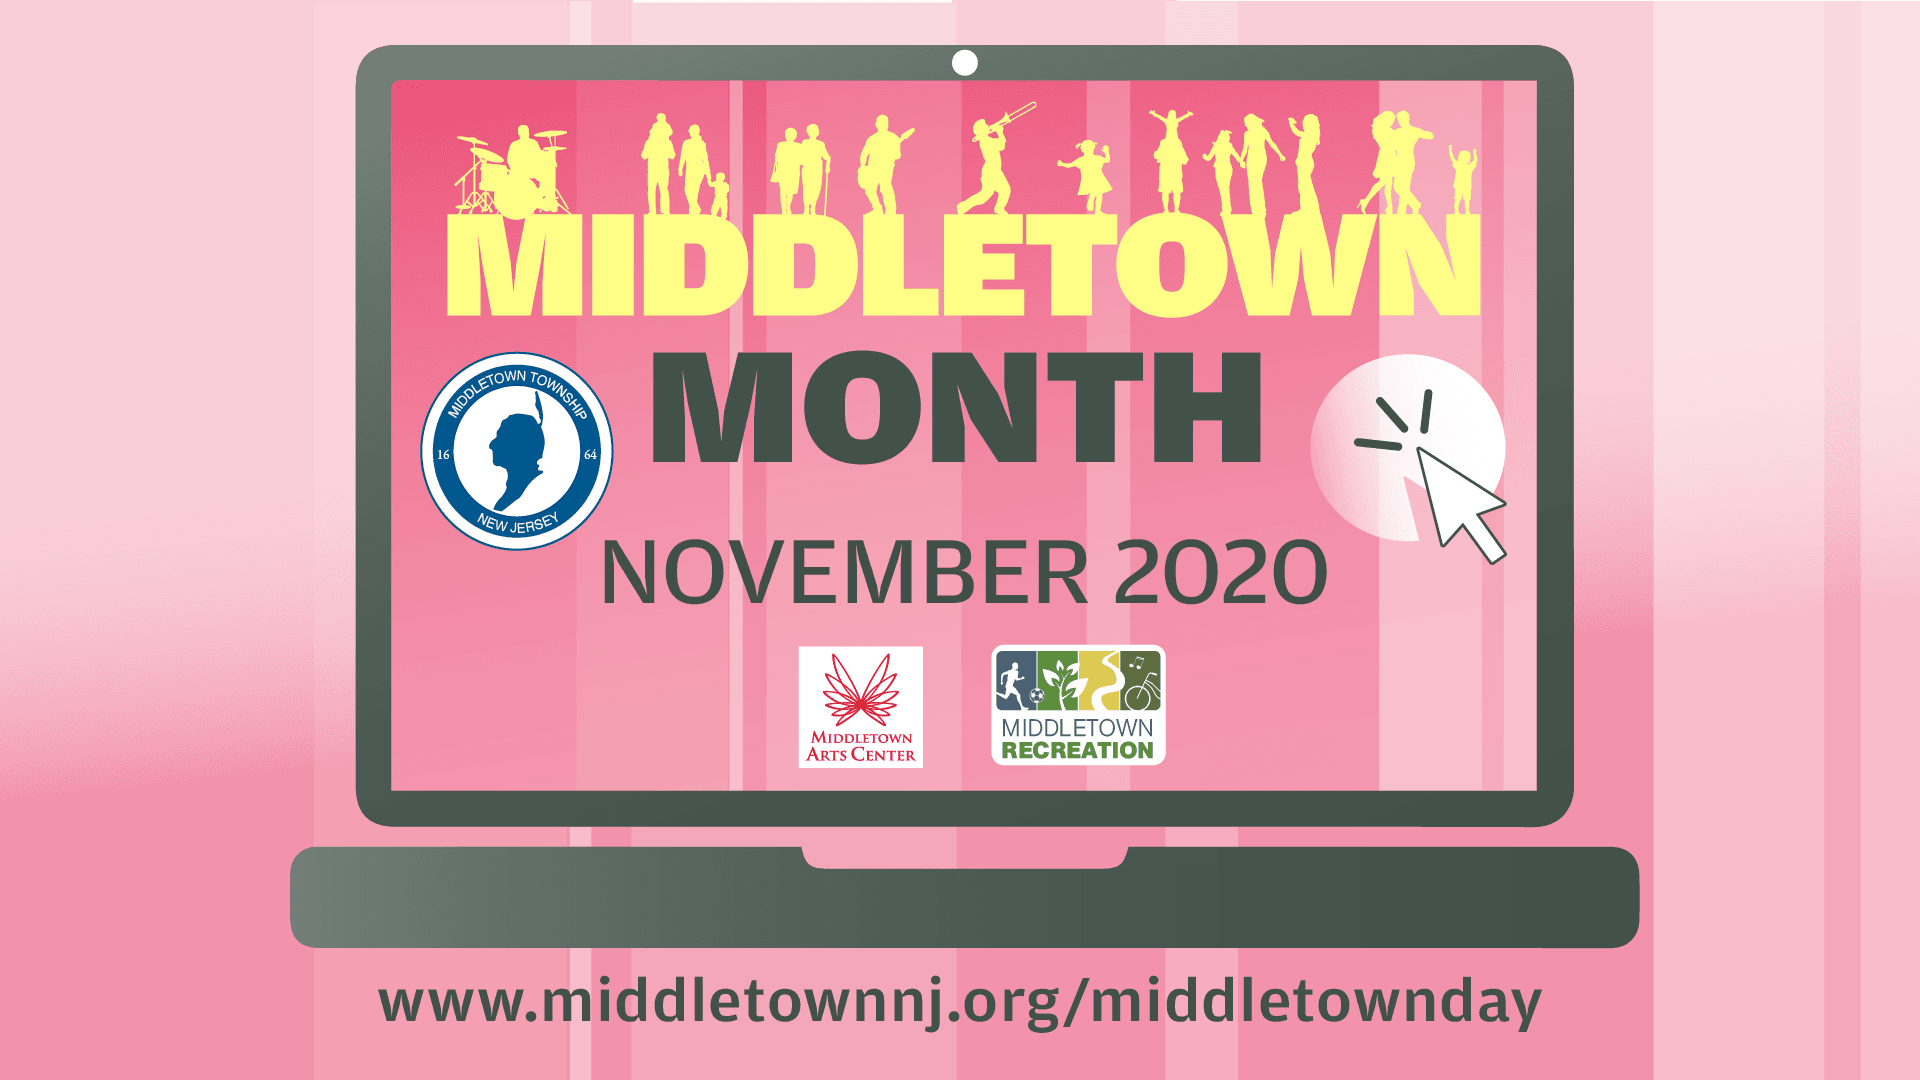 Middletown Month 2020 - Square